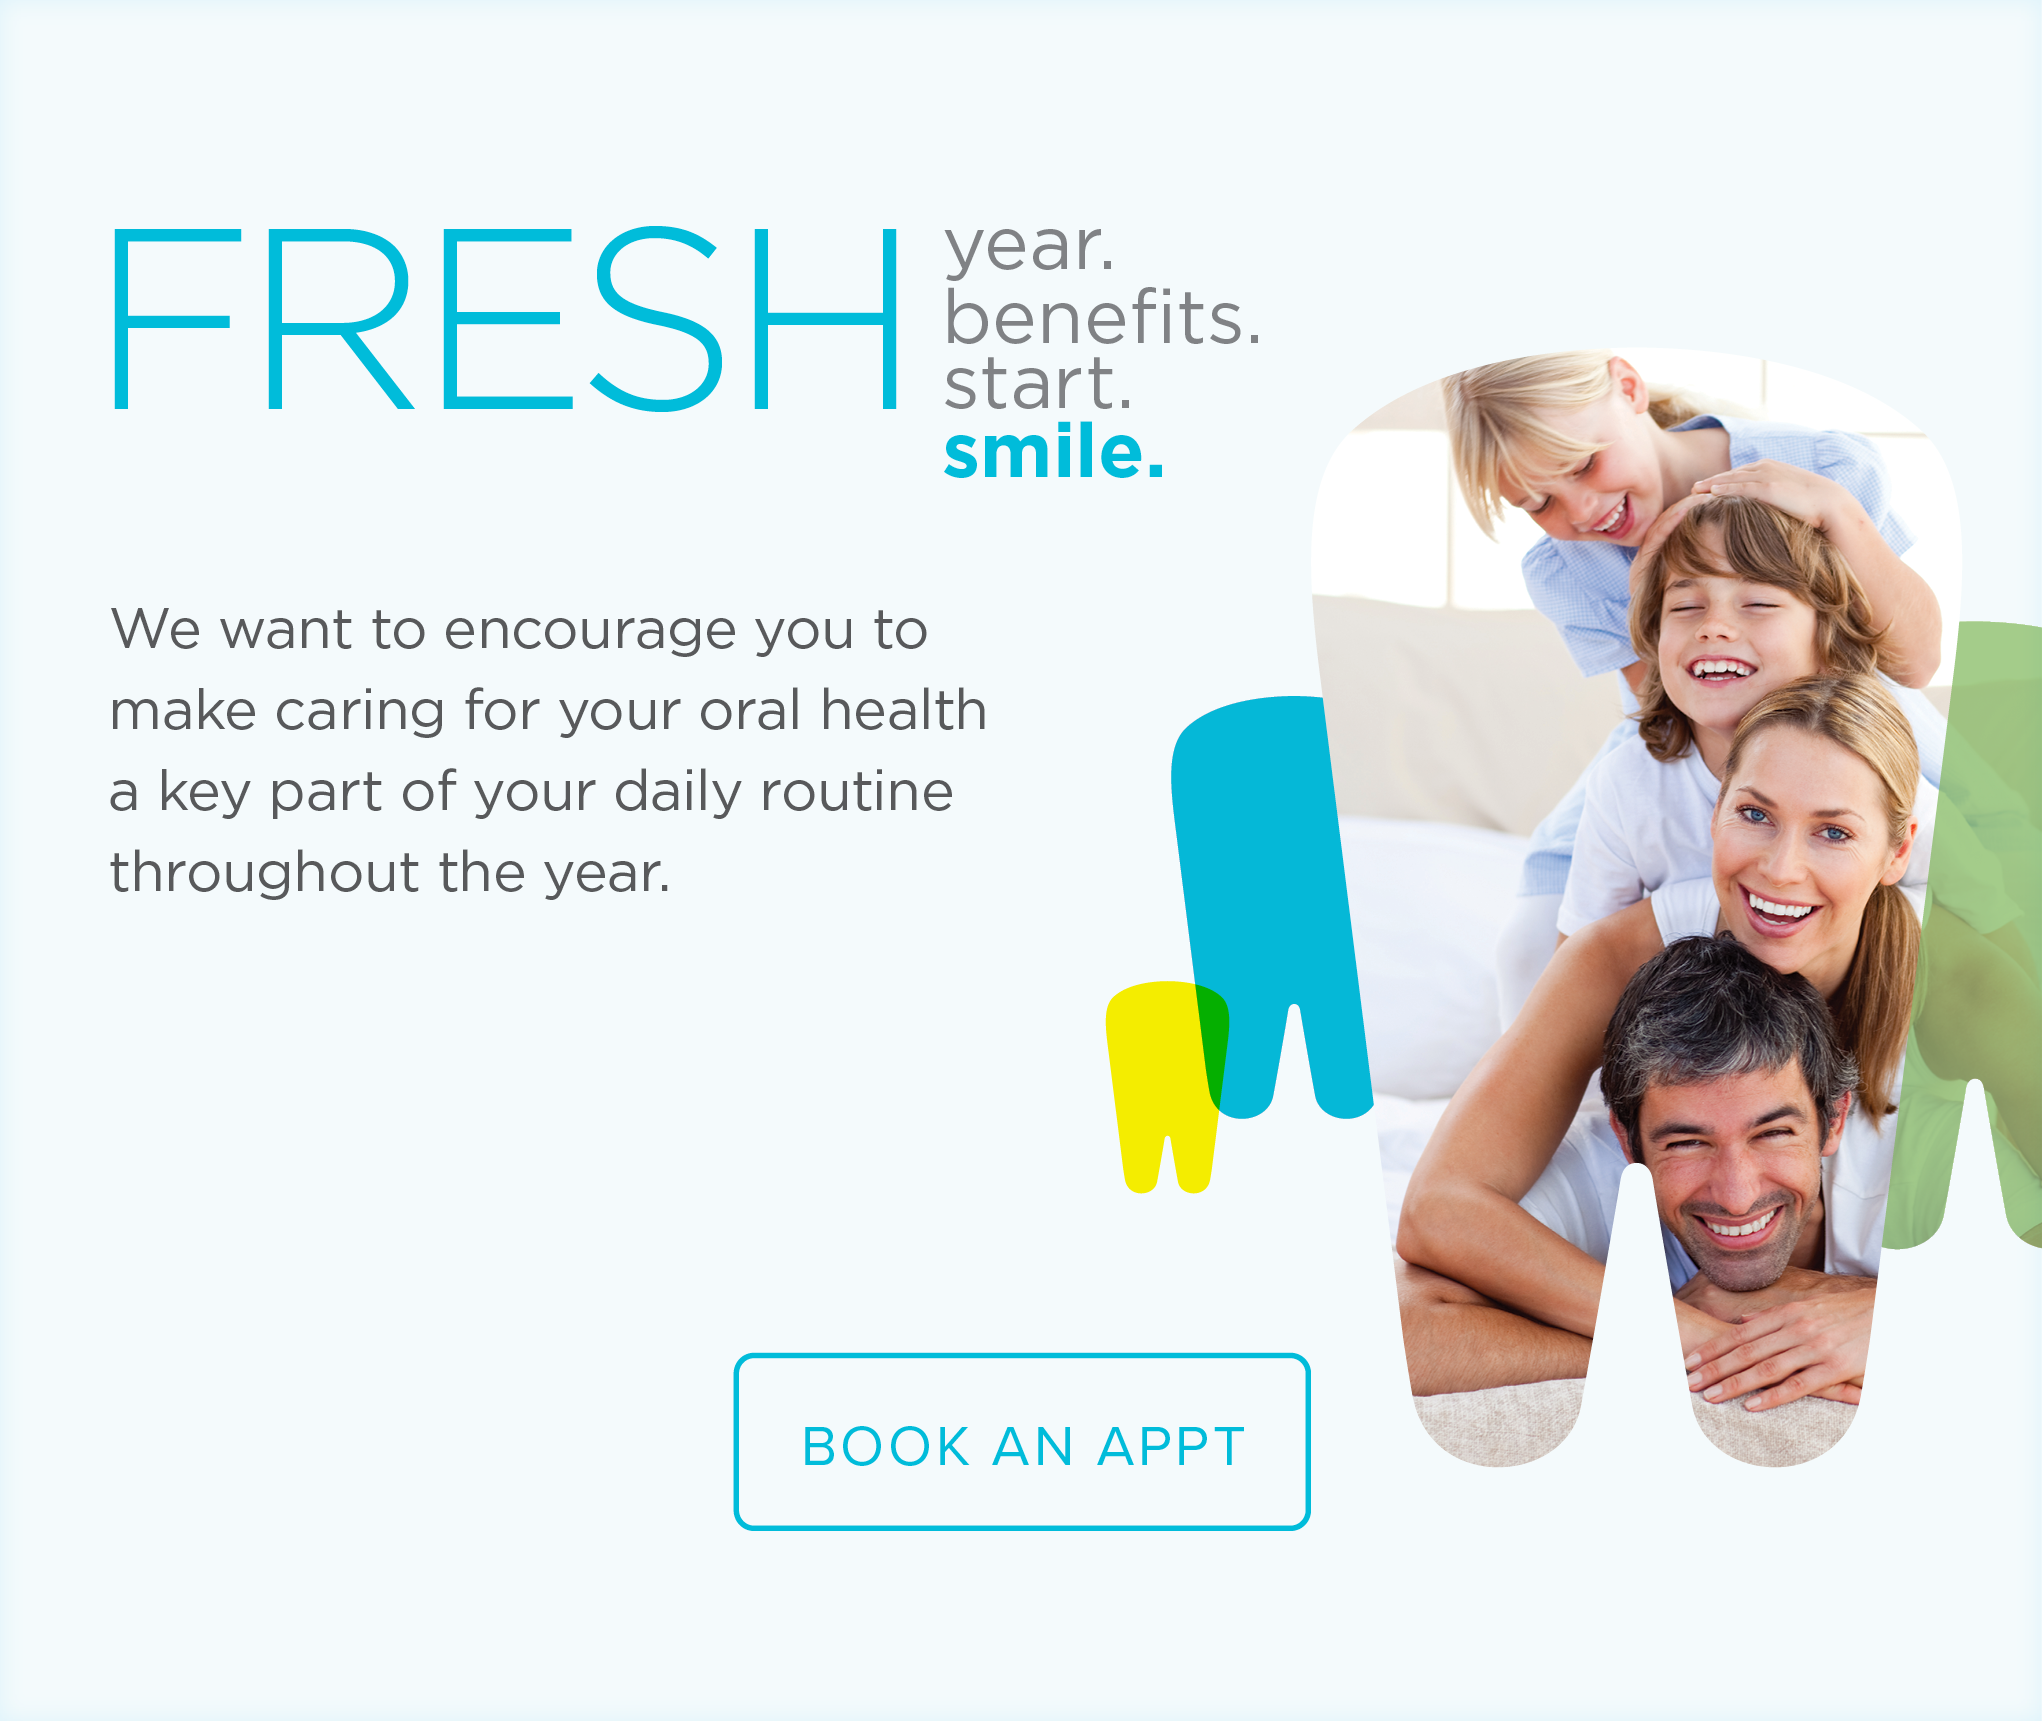 Horizon Modern Dentistry and Orthodontics - Make the Most of Your Benefits